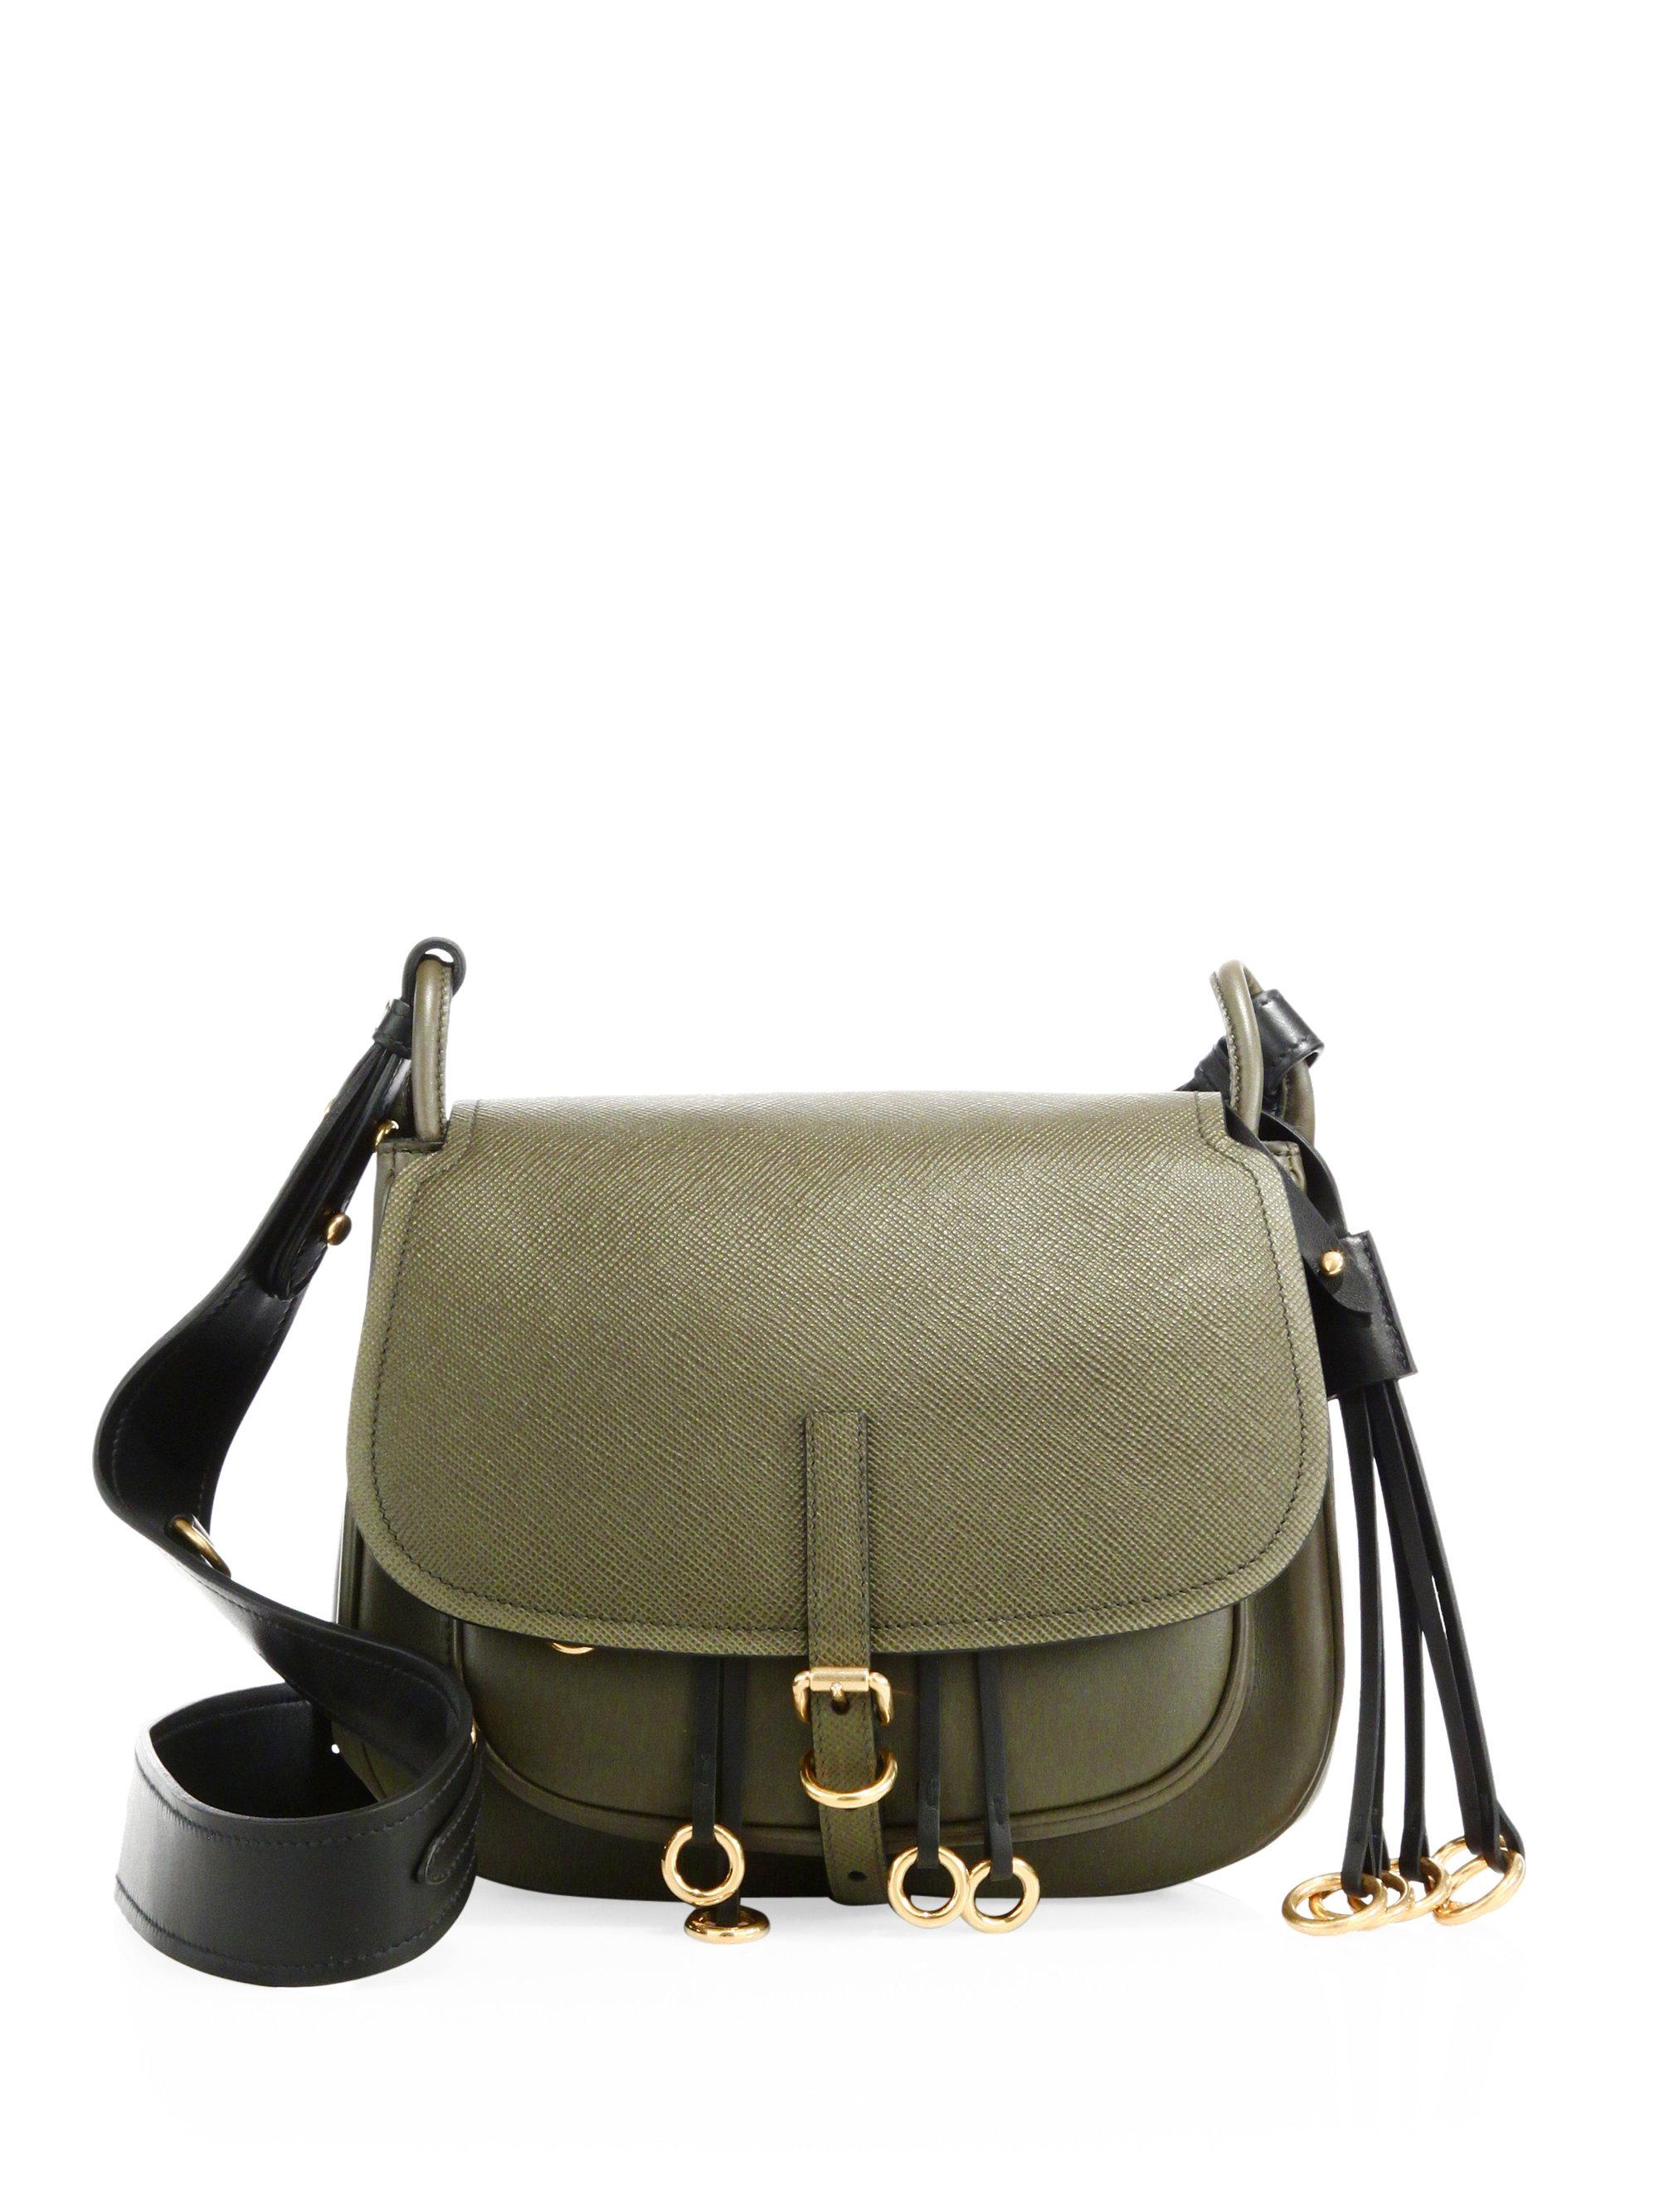 fb2d8eb85a5f Prada Corsaire Leather Shoulder Bag in Green - Lyst